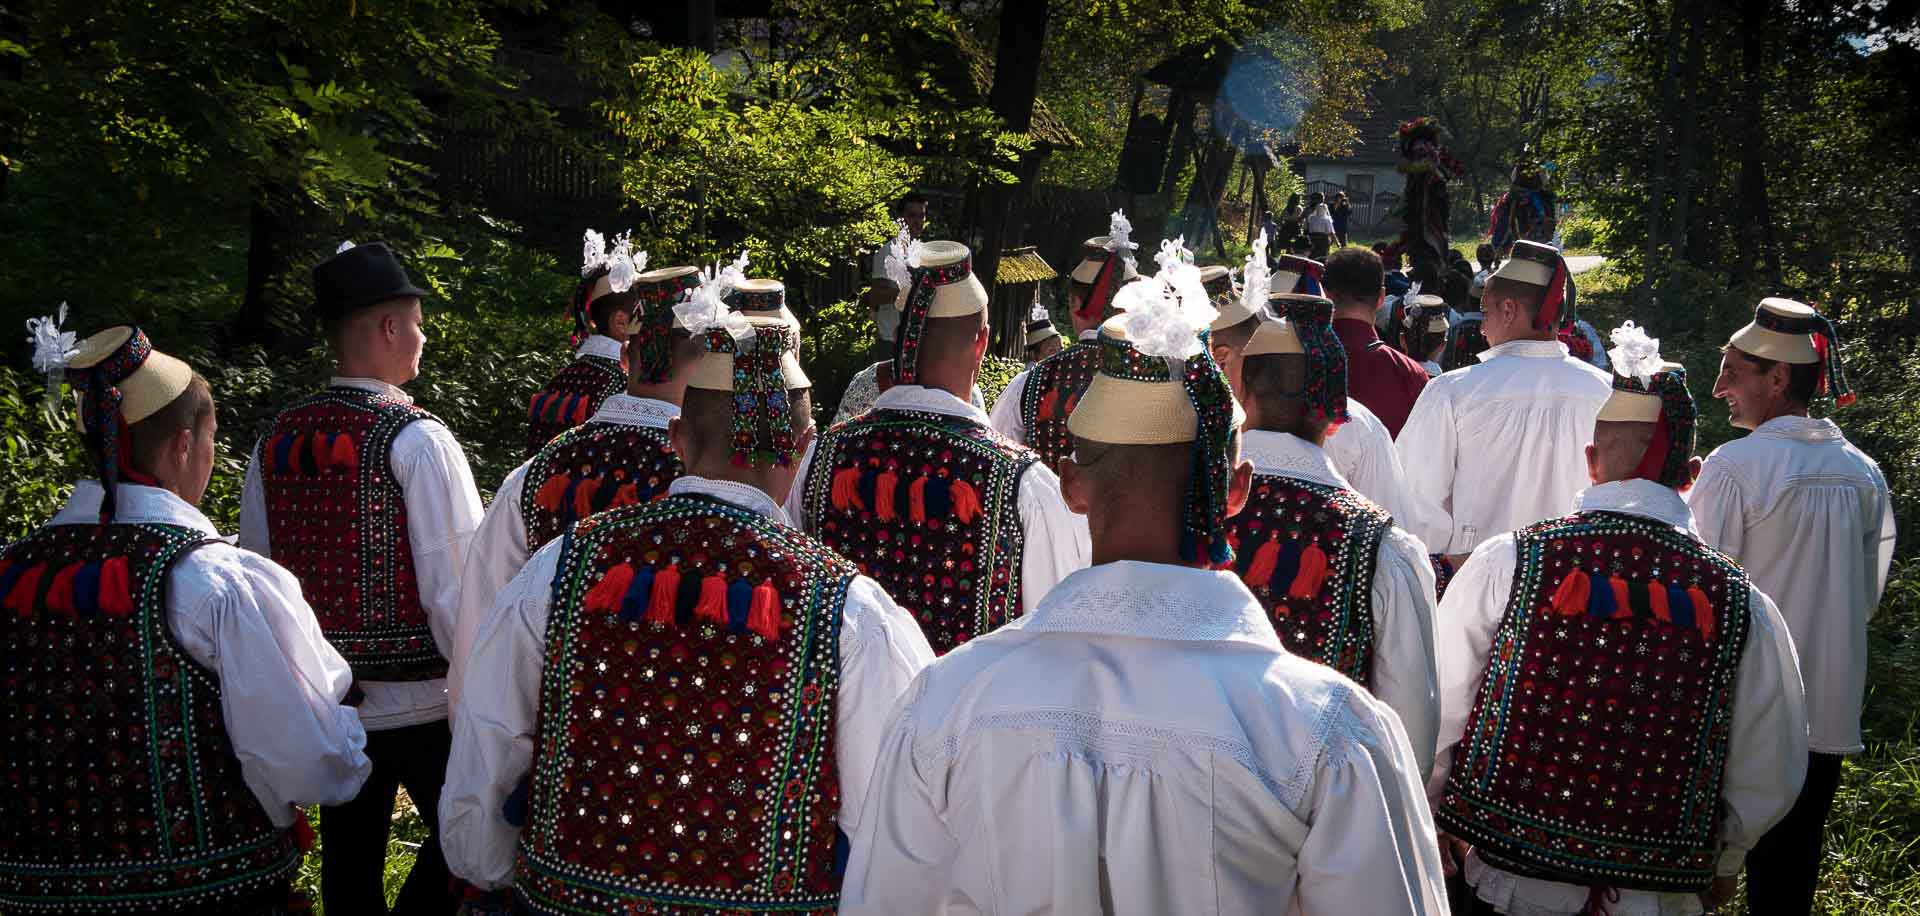 Things to do in Romania - Take part in a traditional wedding in Maramures